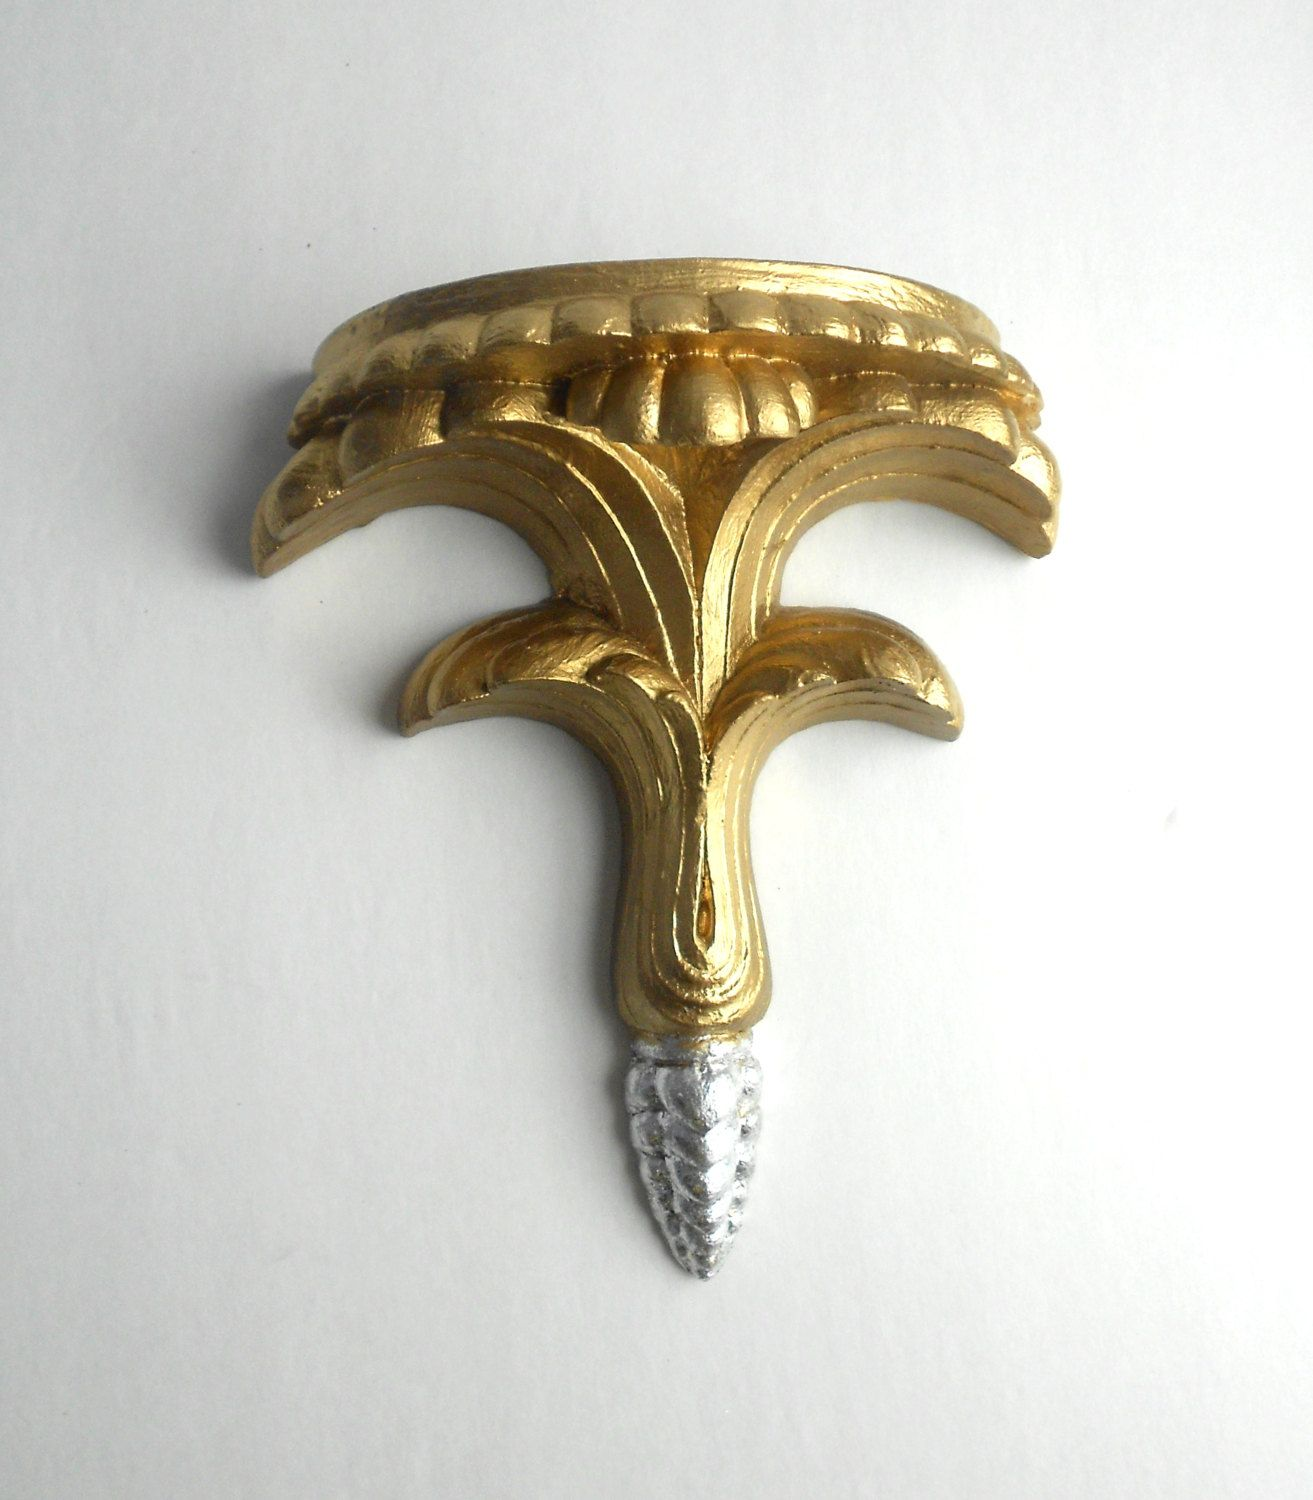 7x6x312 decorative pedestal sconcegold wall sconce shelf 7x6x312 decorative pedestal sconcegold wall sconce amipublicfo Gallery